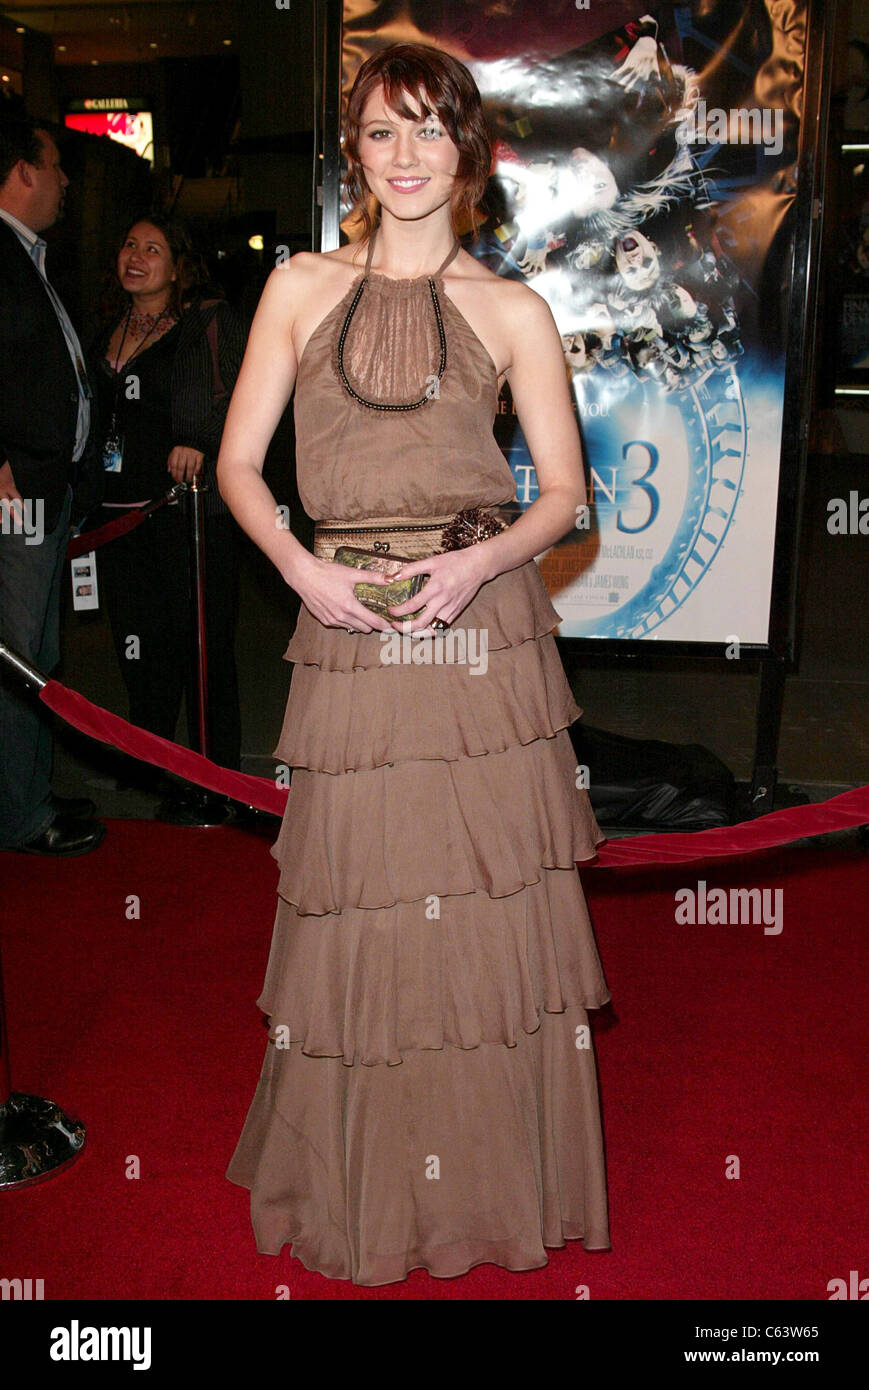 Mary Elizabeth Winstead at arrivals for FINAL DESTINATION 3 Premiere, Grauman's Chinese Theatre, Los Angeles, CA, Stock Photo